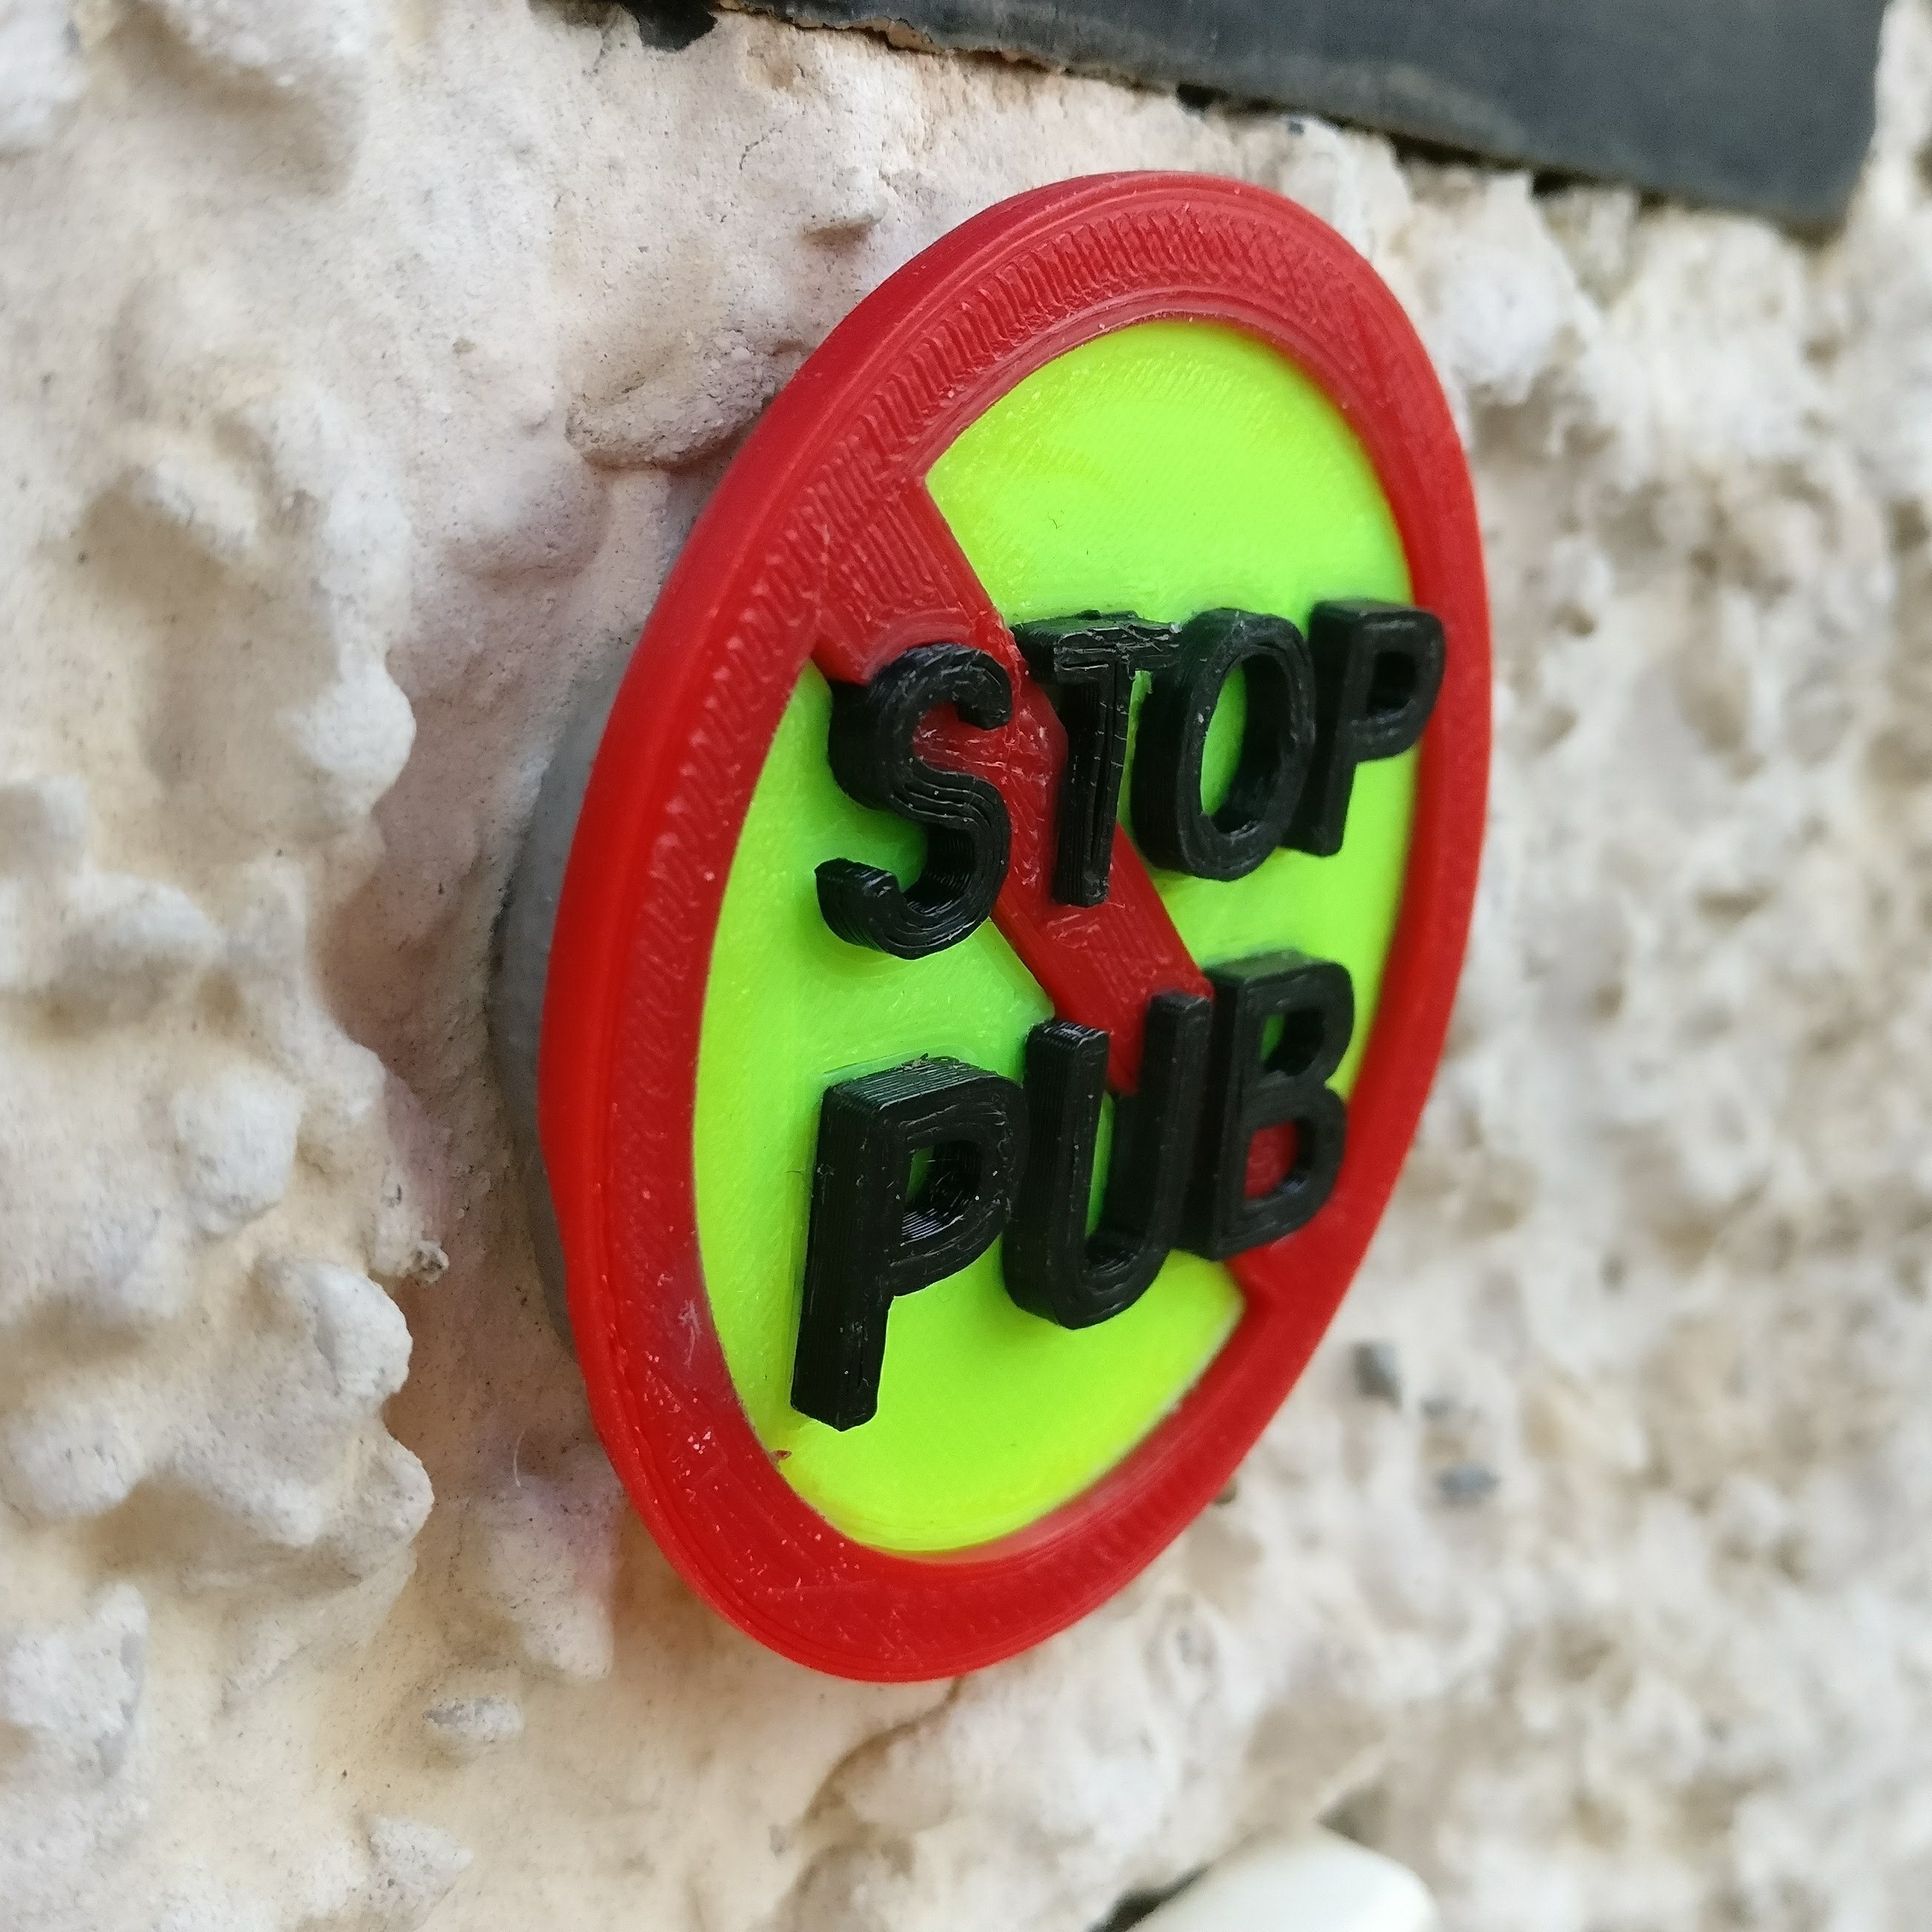 IMG_20180313_181907.jpg Download free STL file Stop PUB for mailbox • Model to 3D print, xTremePower